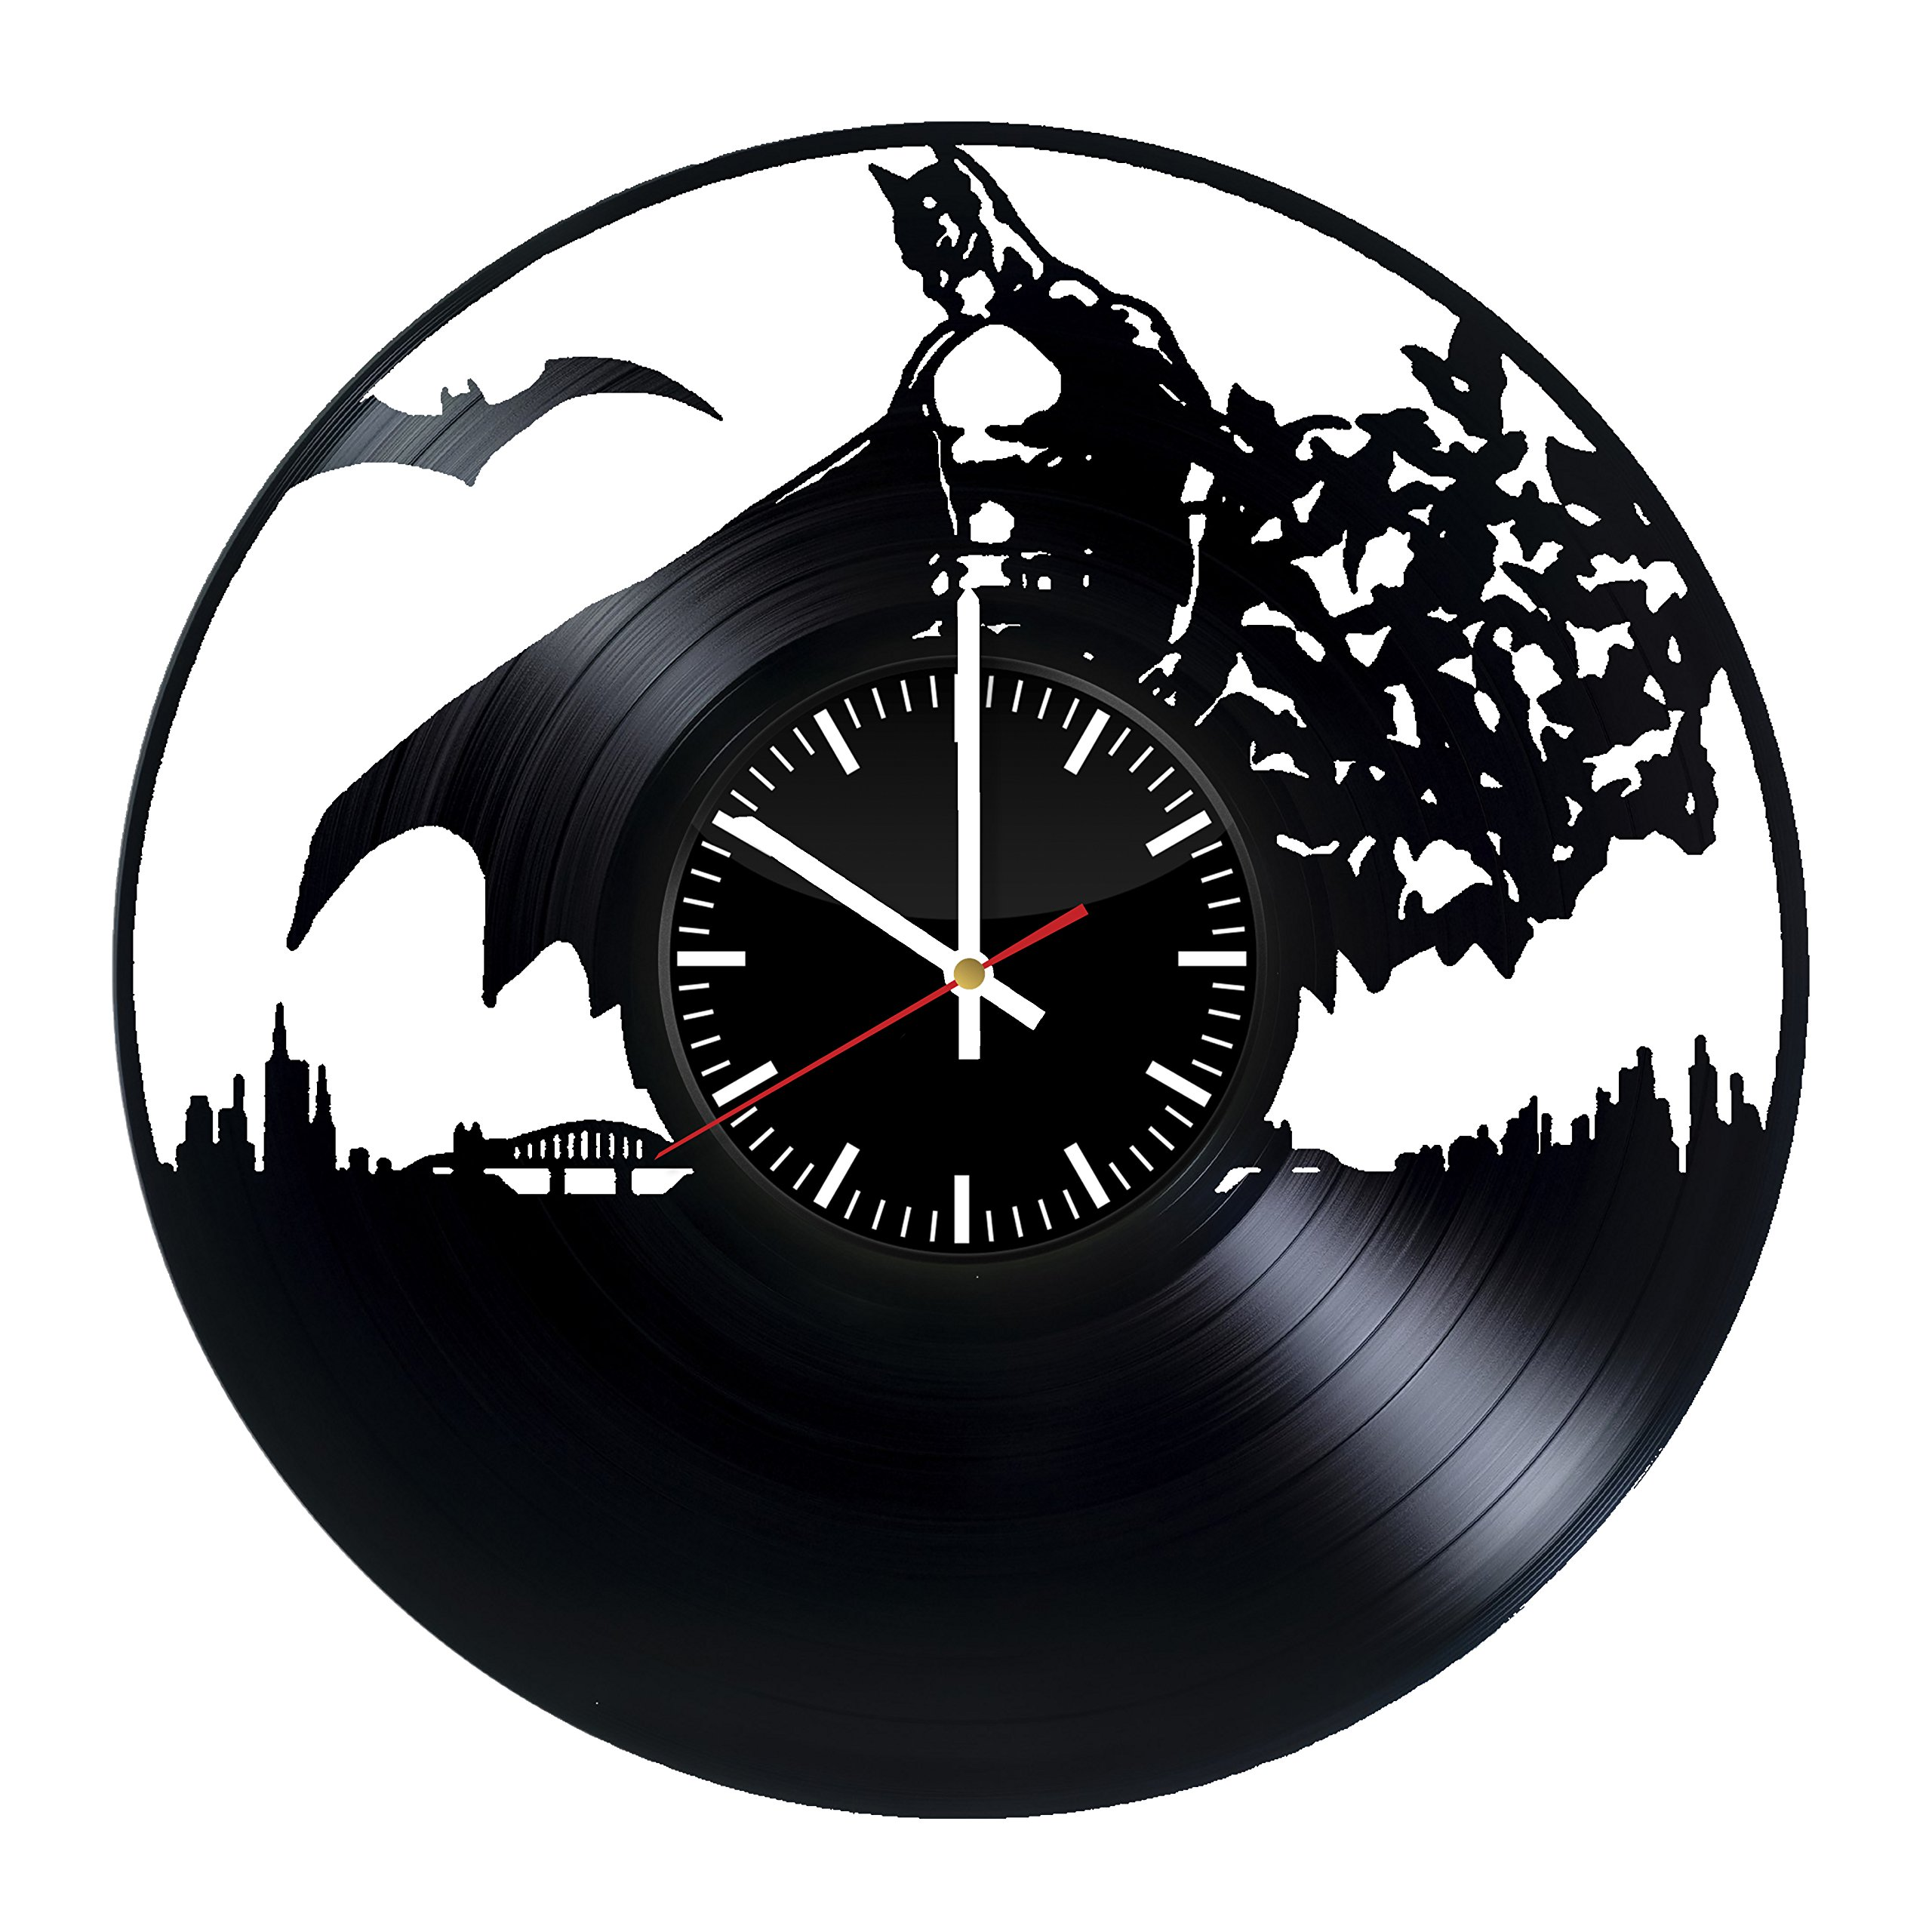 Welcome Everyday Arts Batman Vinyl Record Wall Clock - Get Unique Home Room Wall Decor - Gift Ideas Men Women – Unique DC Comics Themed Fan Art Design